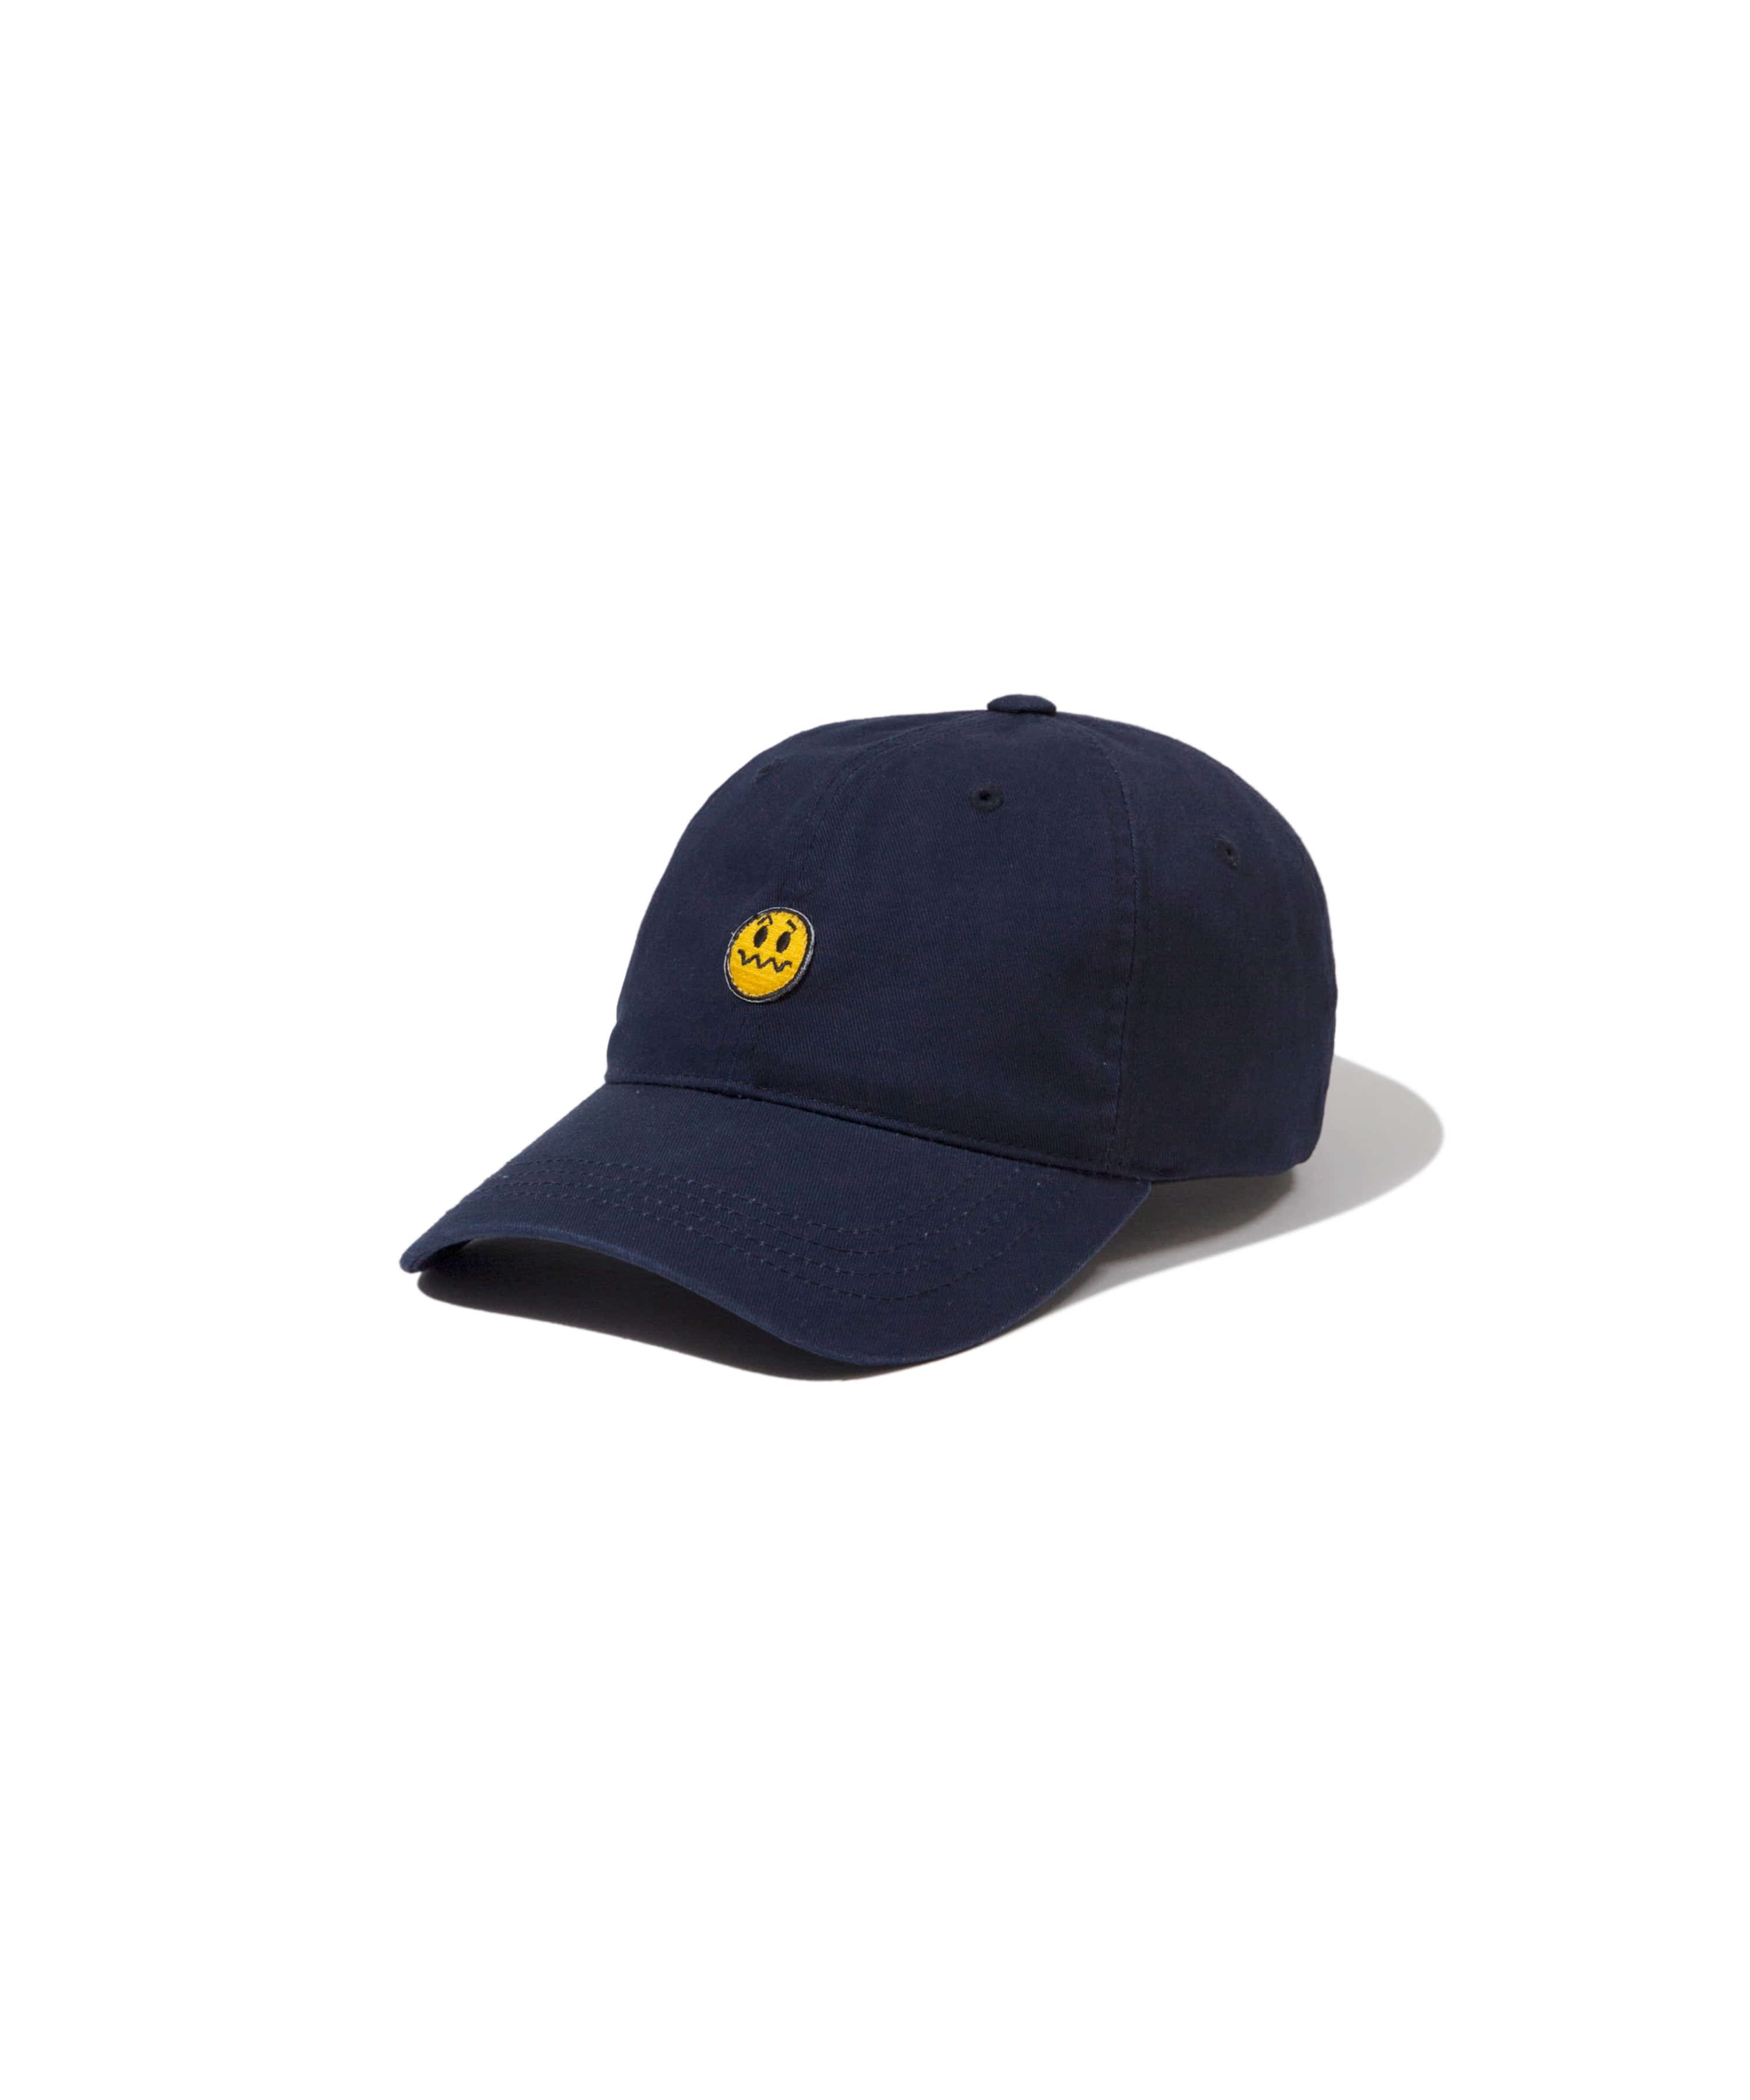 [추석특가50%] UNSMILE 6PANEL BALL CAP NAVY